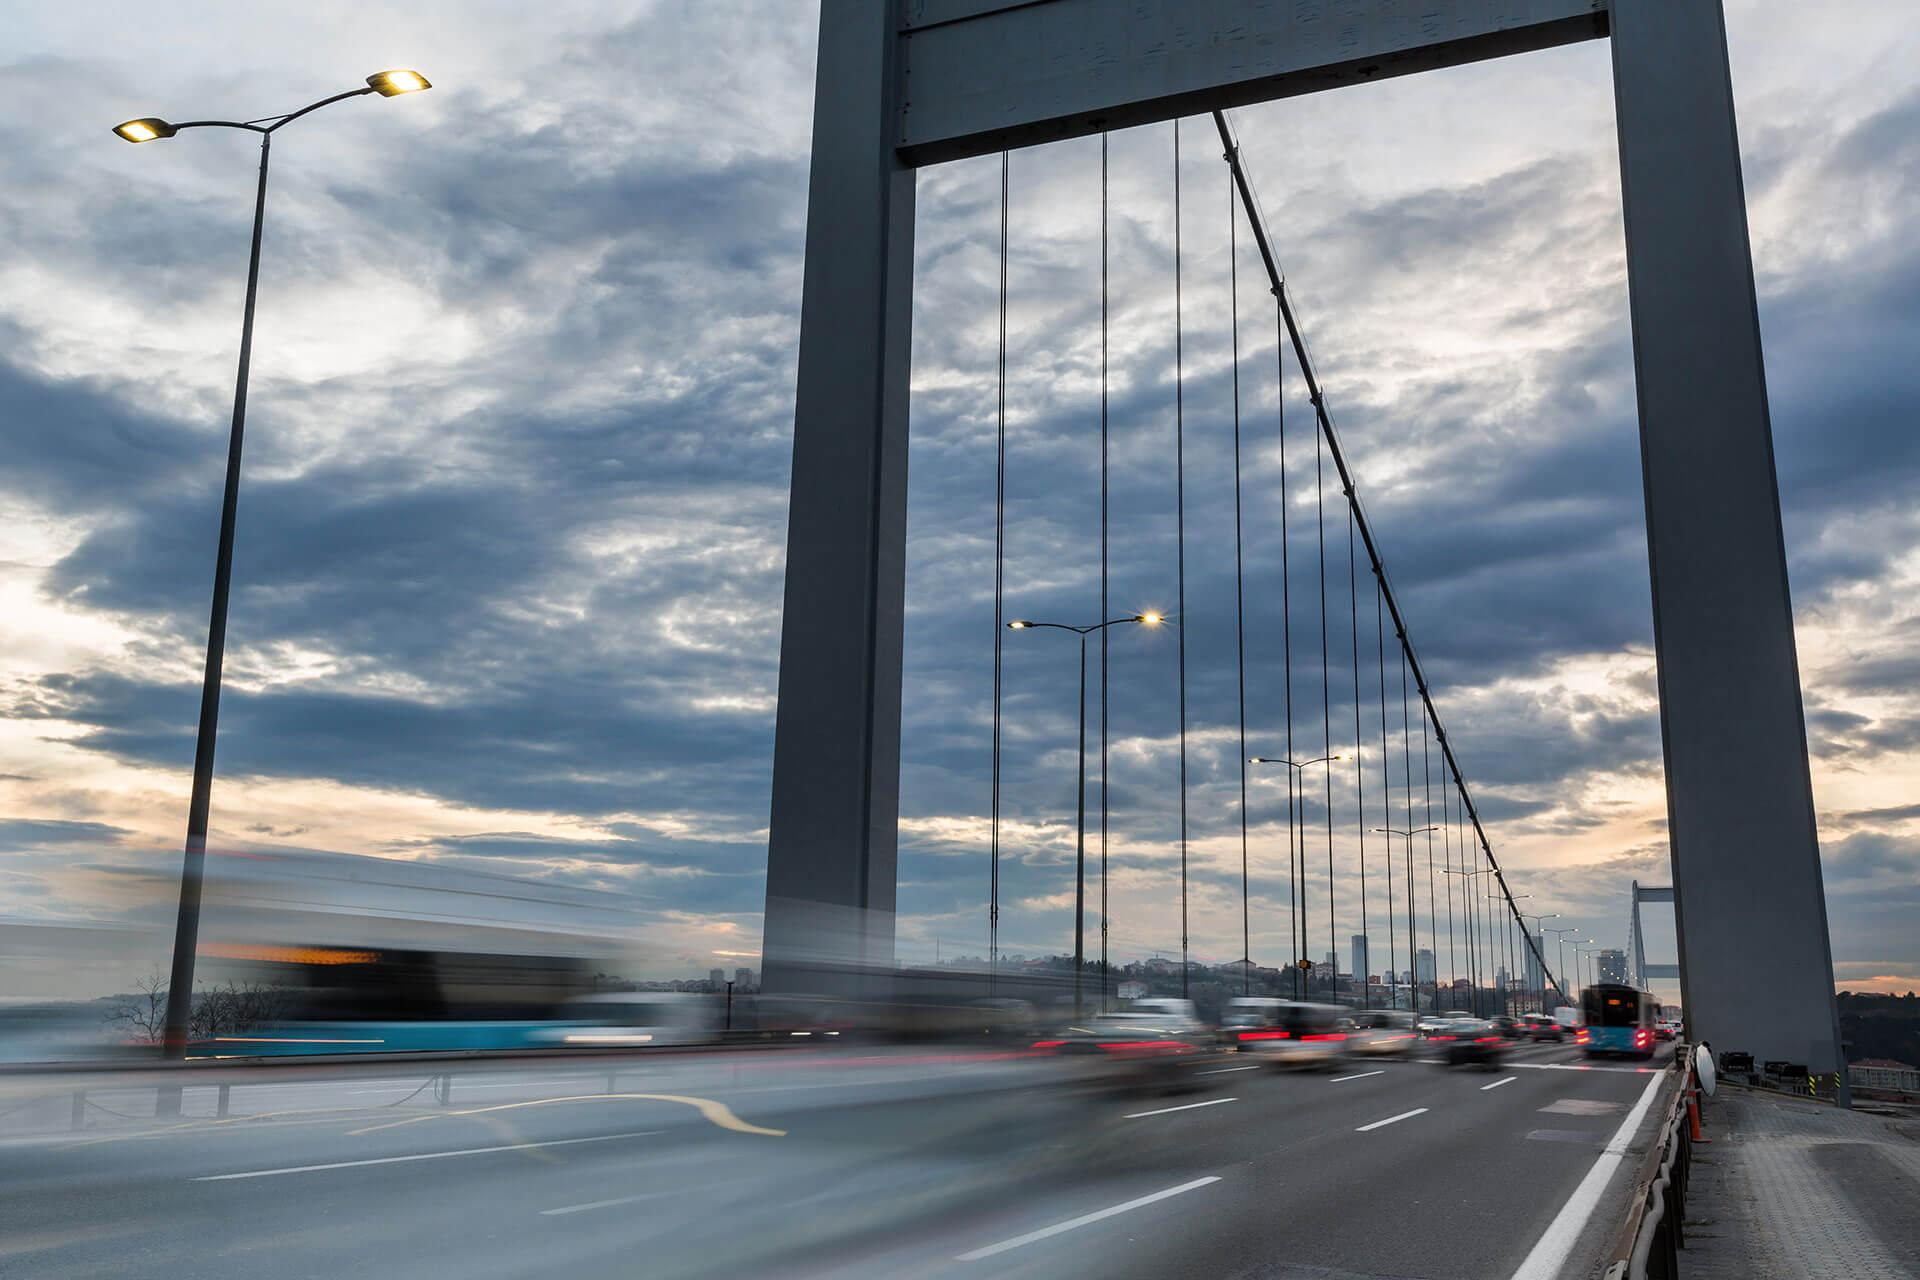 Energy efficient Teceo luminaires provide a high light output, improving visibility on Fatih Sultan Mehmet Bridge